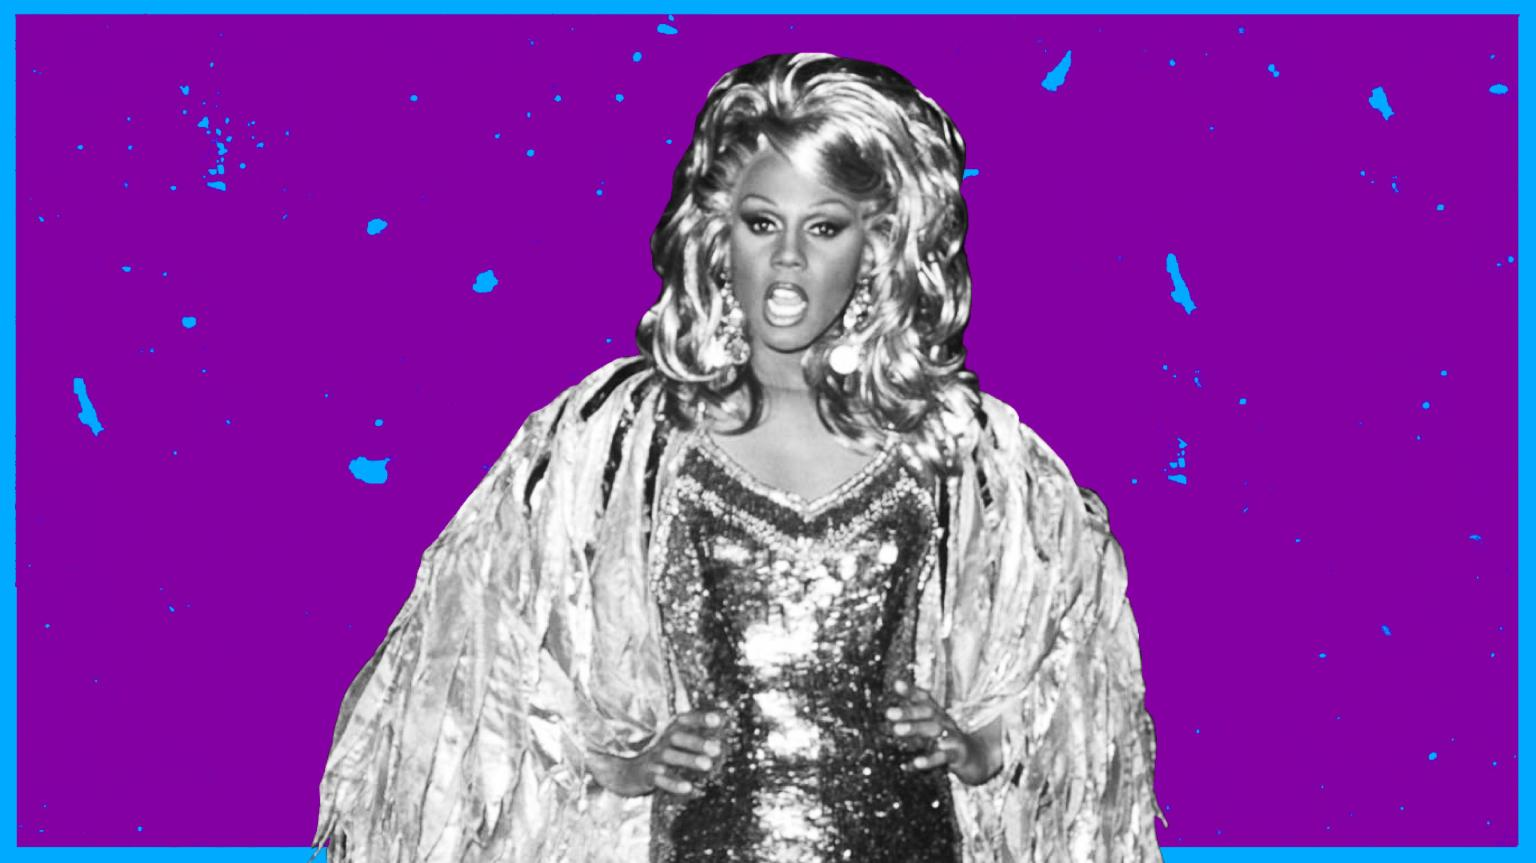 'RuPaul's Drag Race' welcoming first trans man contestant